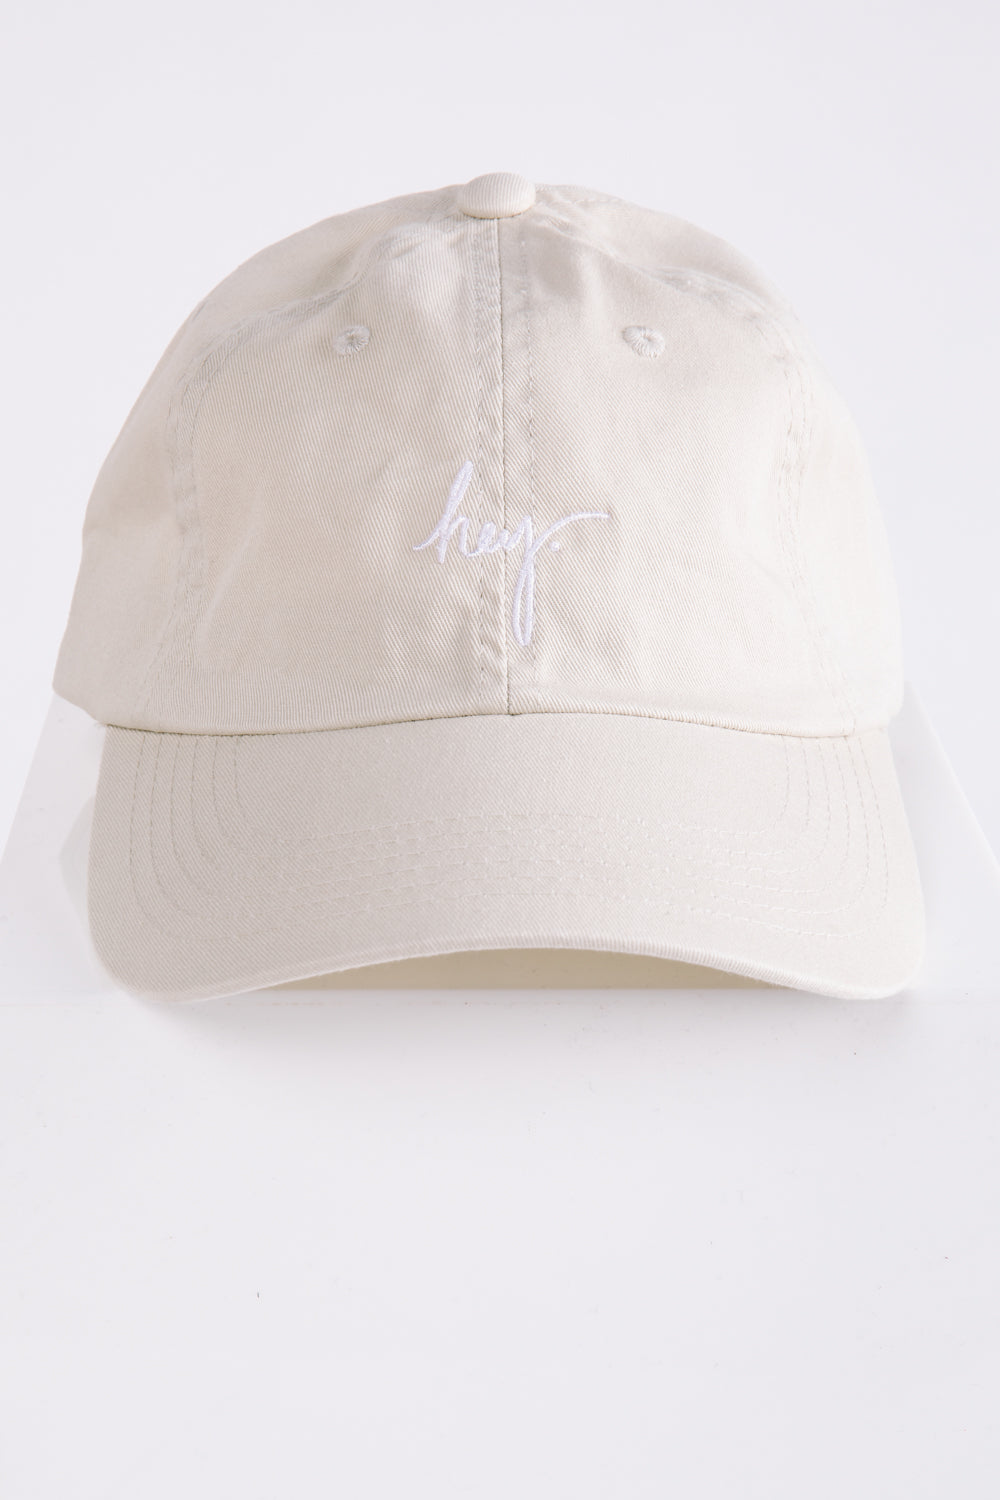 Piper & Scoot: The hey. Cap in Tan